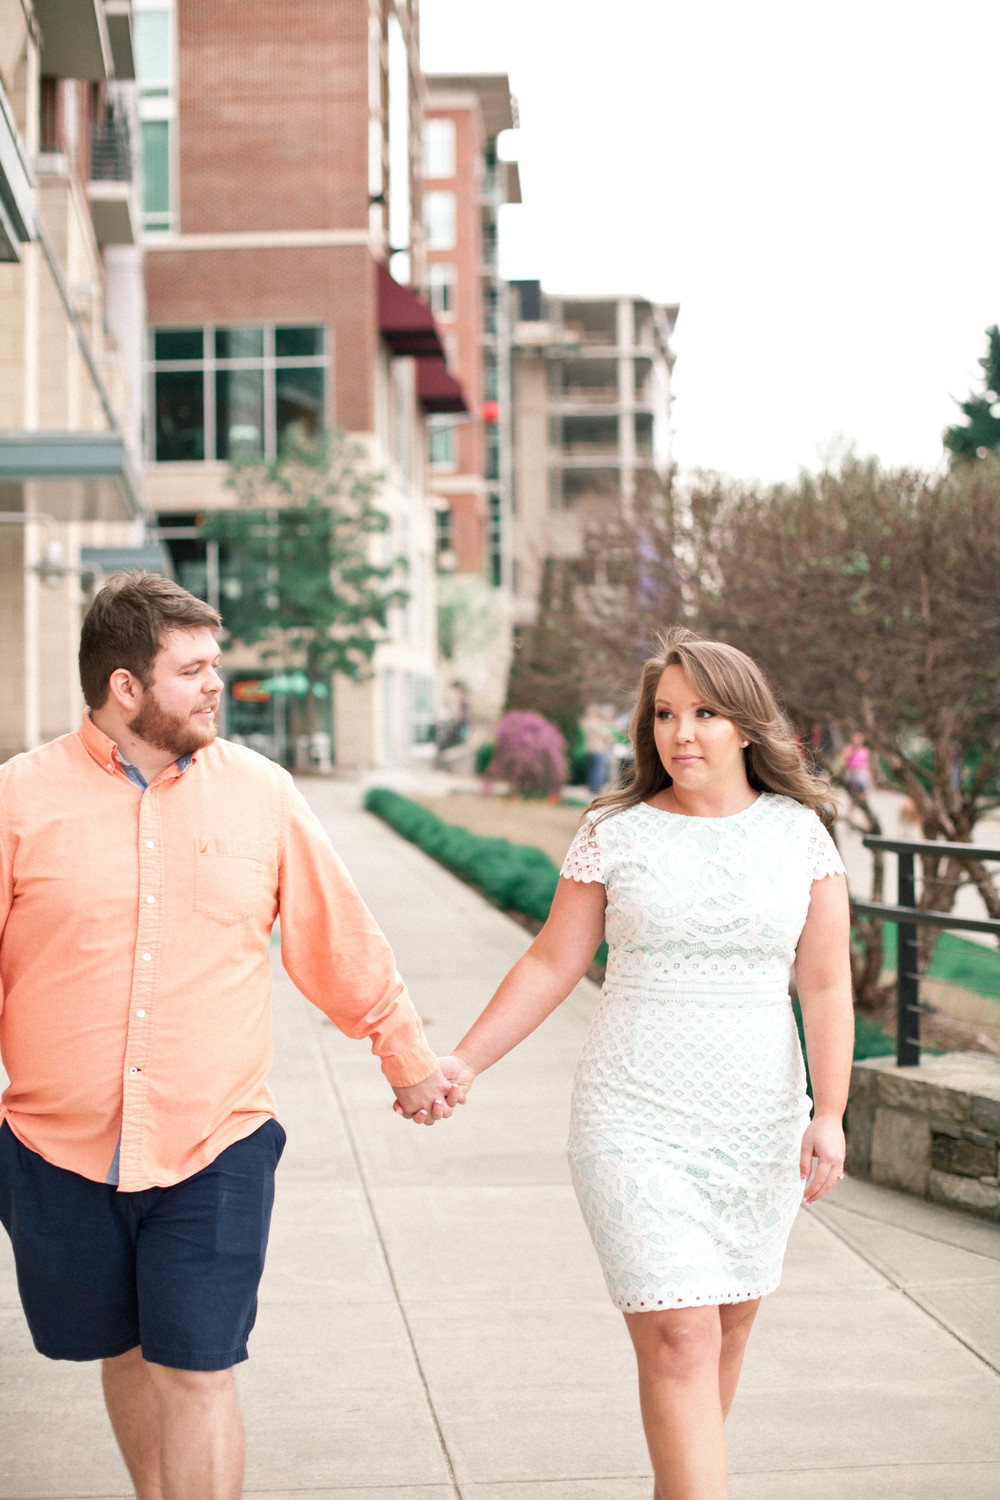 zach_gabbie_engagement_poured_out_photography-17.jpg